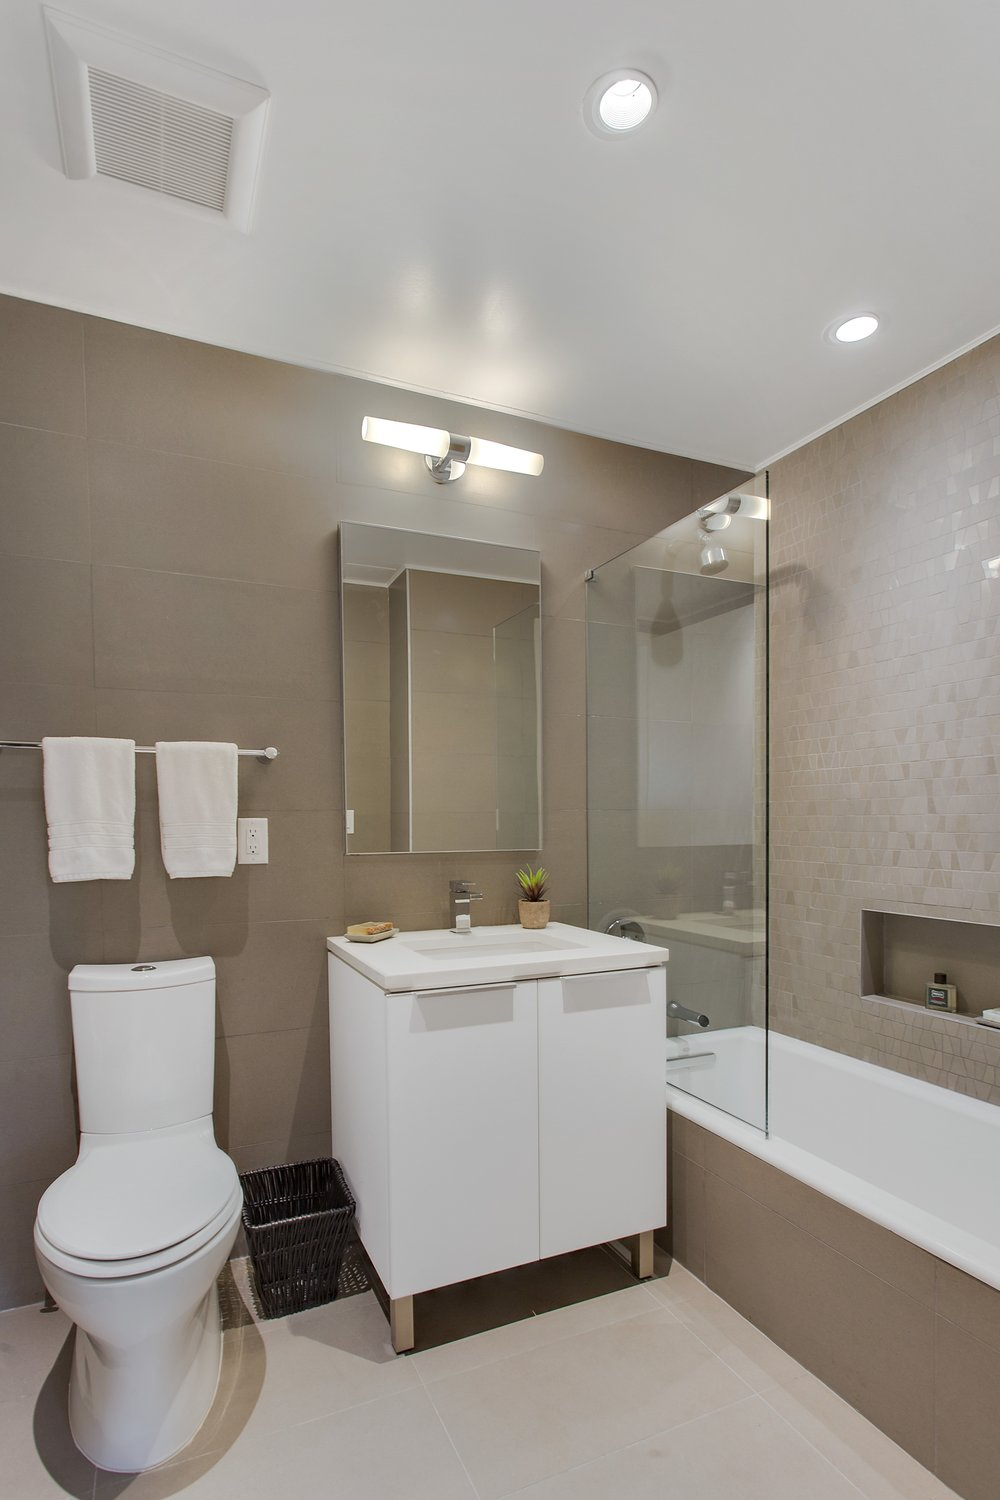 THE BATHROOMS - Bathrooms are outfitted with porcelain tile, a mosaic accent wall, radiant heated floors, Kohler toilets, sinks and bathtubs, along with Kohler shower fixtures.